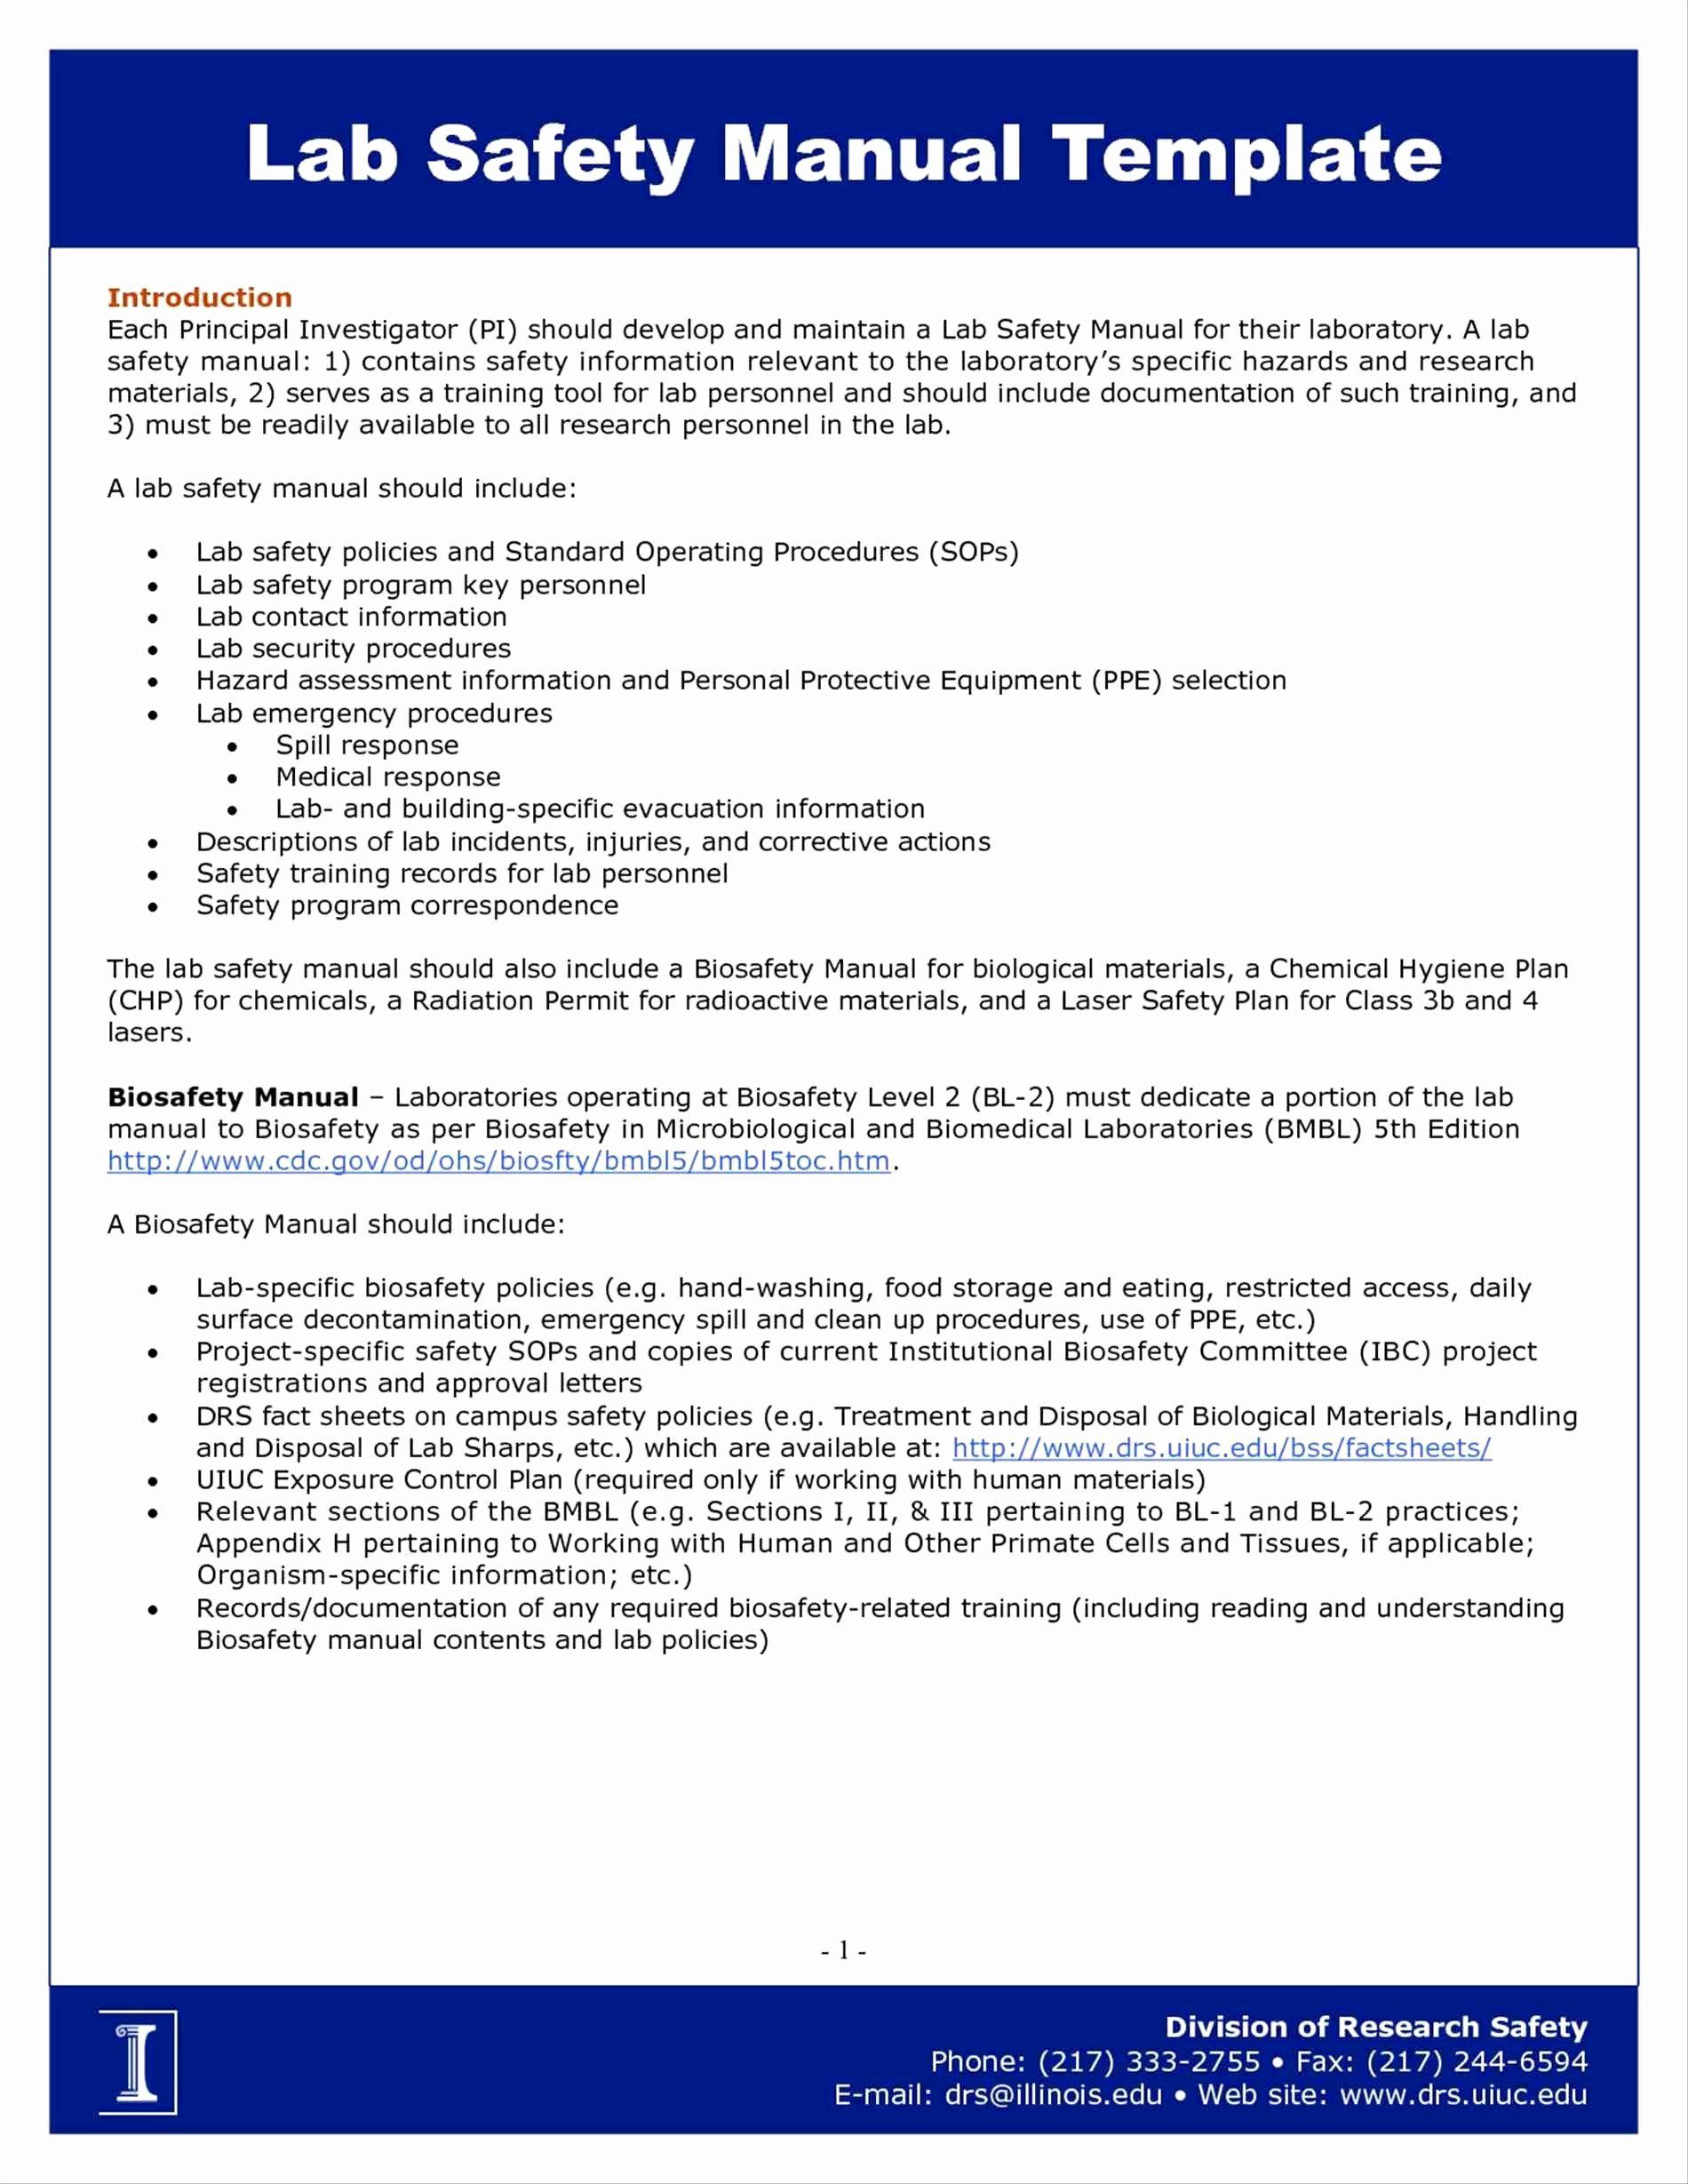 Information Security Analyst Resume Cyber Security Resume Sample Awesome Resume Format For Business Card Template Word Business Plan Template Label Templates